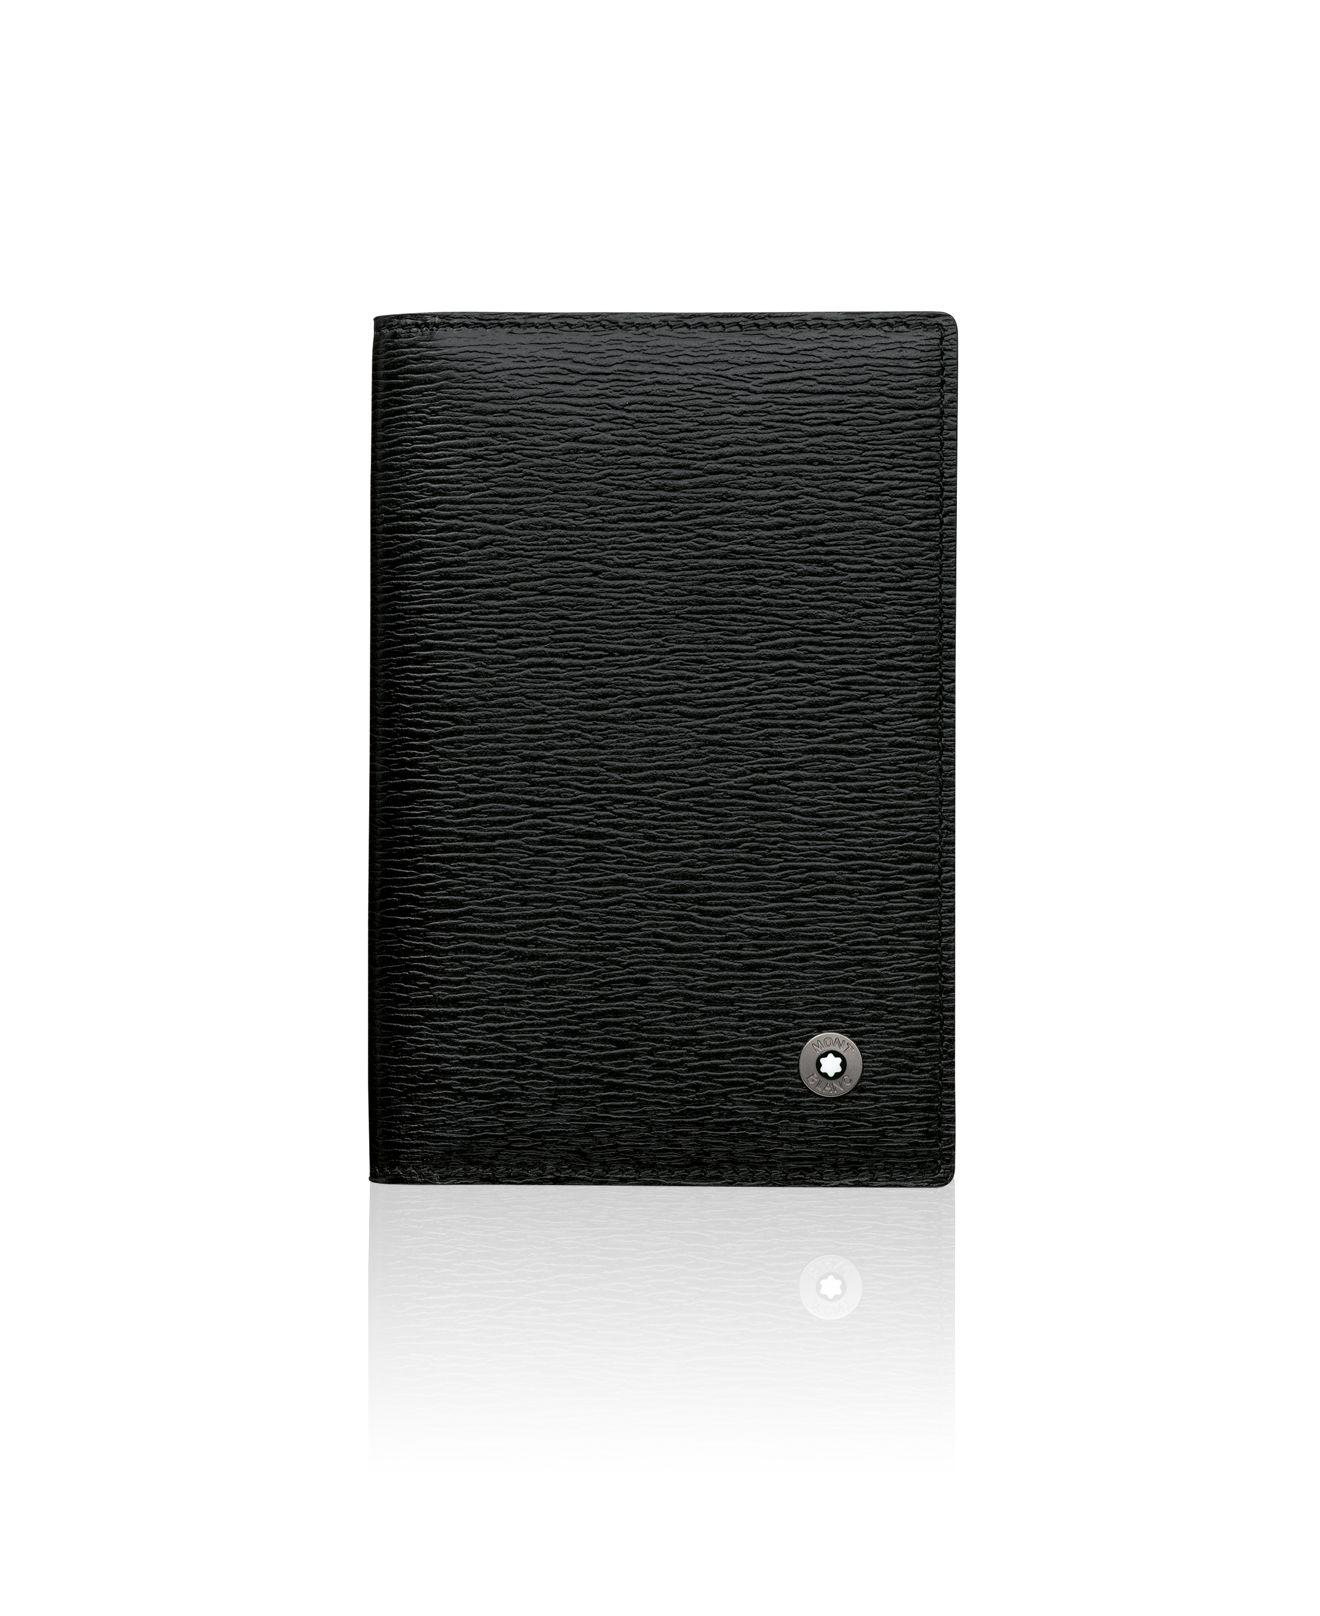 Montblanc 4810 Westside Business Card Holder in Black for Men